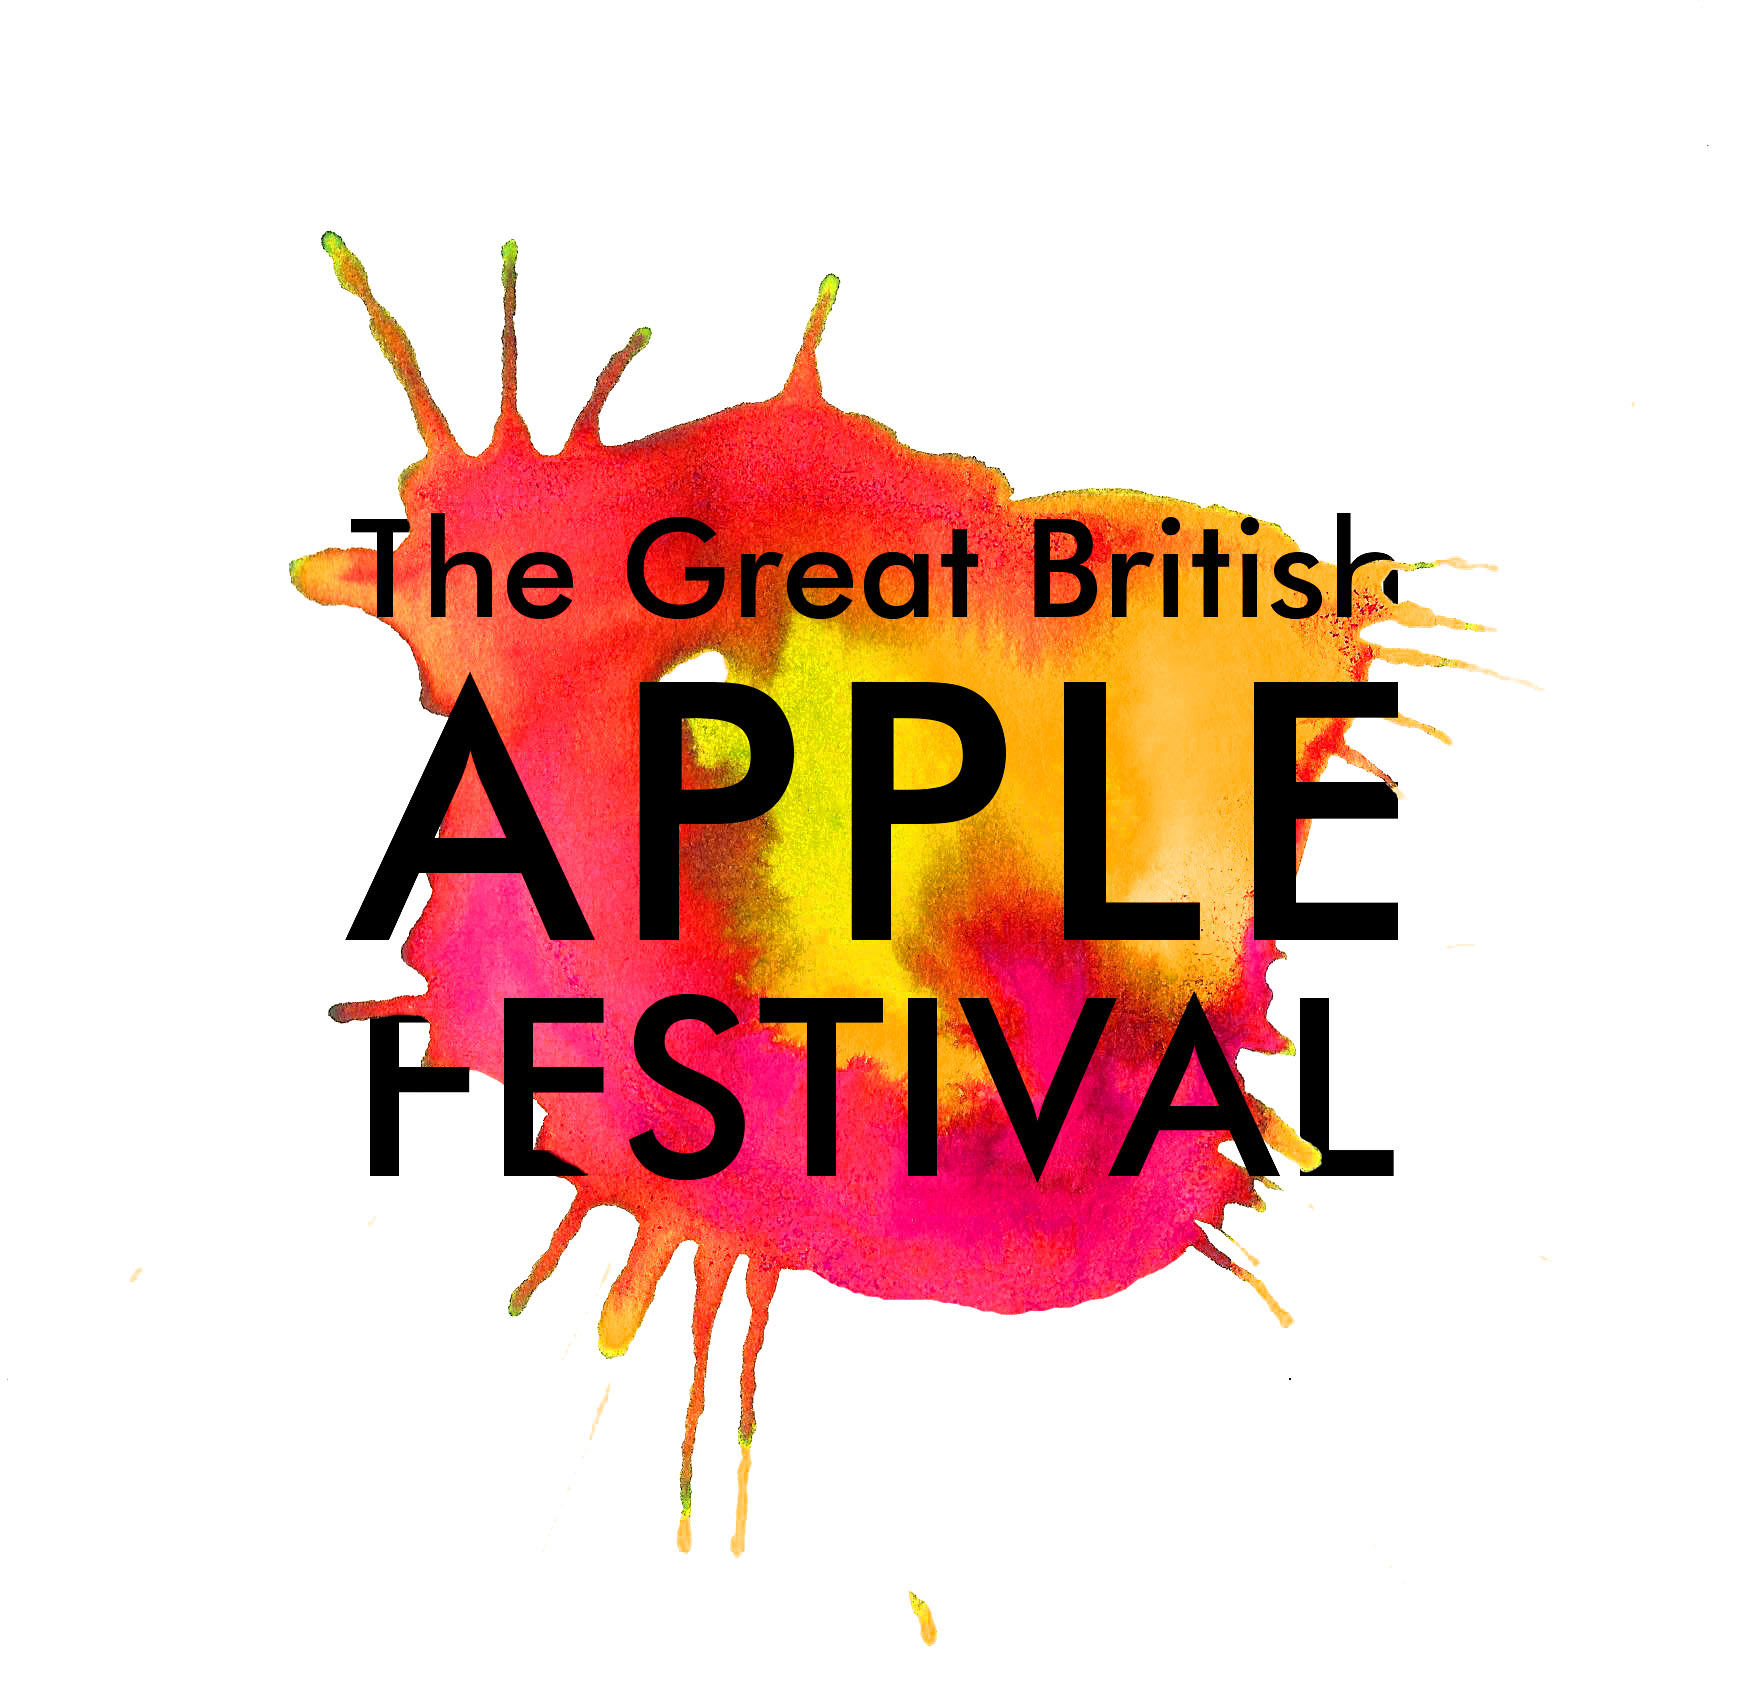 The Great British Apple Festival